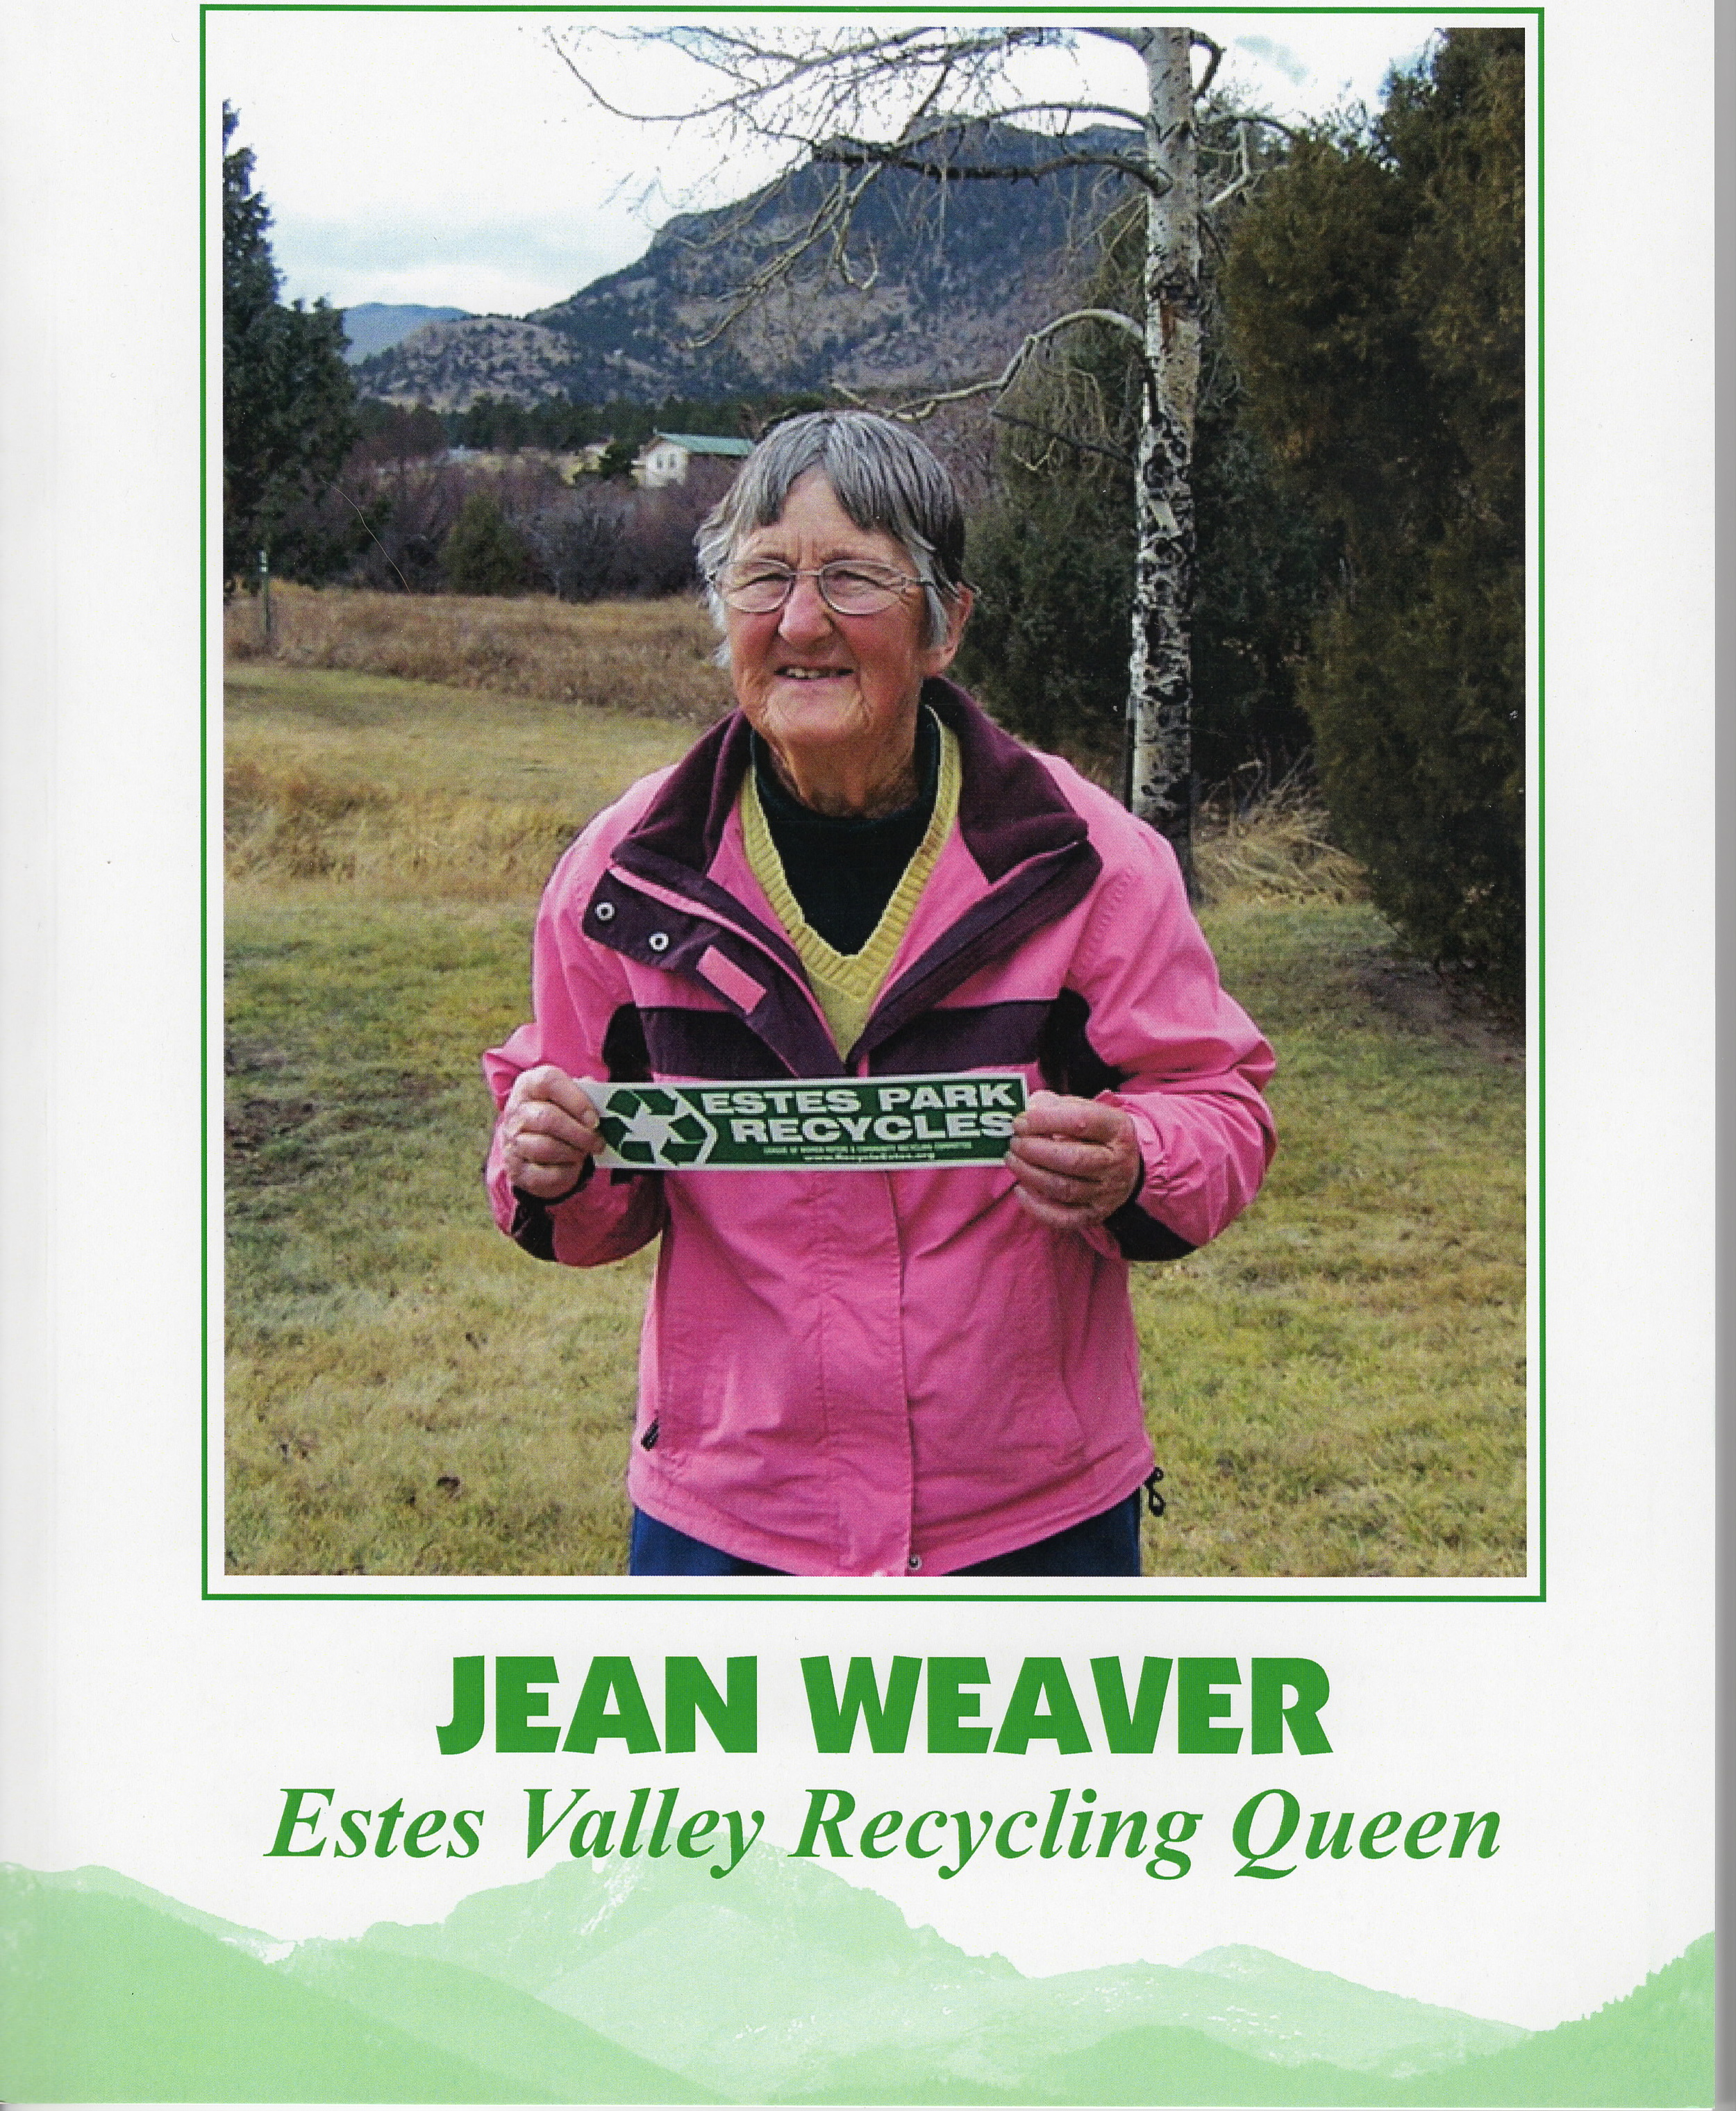 Thanks to the efforts of Jean Weaver, Estes Park can boast to being the second longest continually recycling community in the state of Colorado, behind only Boulder. The Community Recycling Committee documented Jean's lifetime of work by compiling her history into a book that's available at the Estes Valley Library, Estes Park Museum, and online by clicking the photo above. (CRC photo)